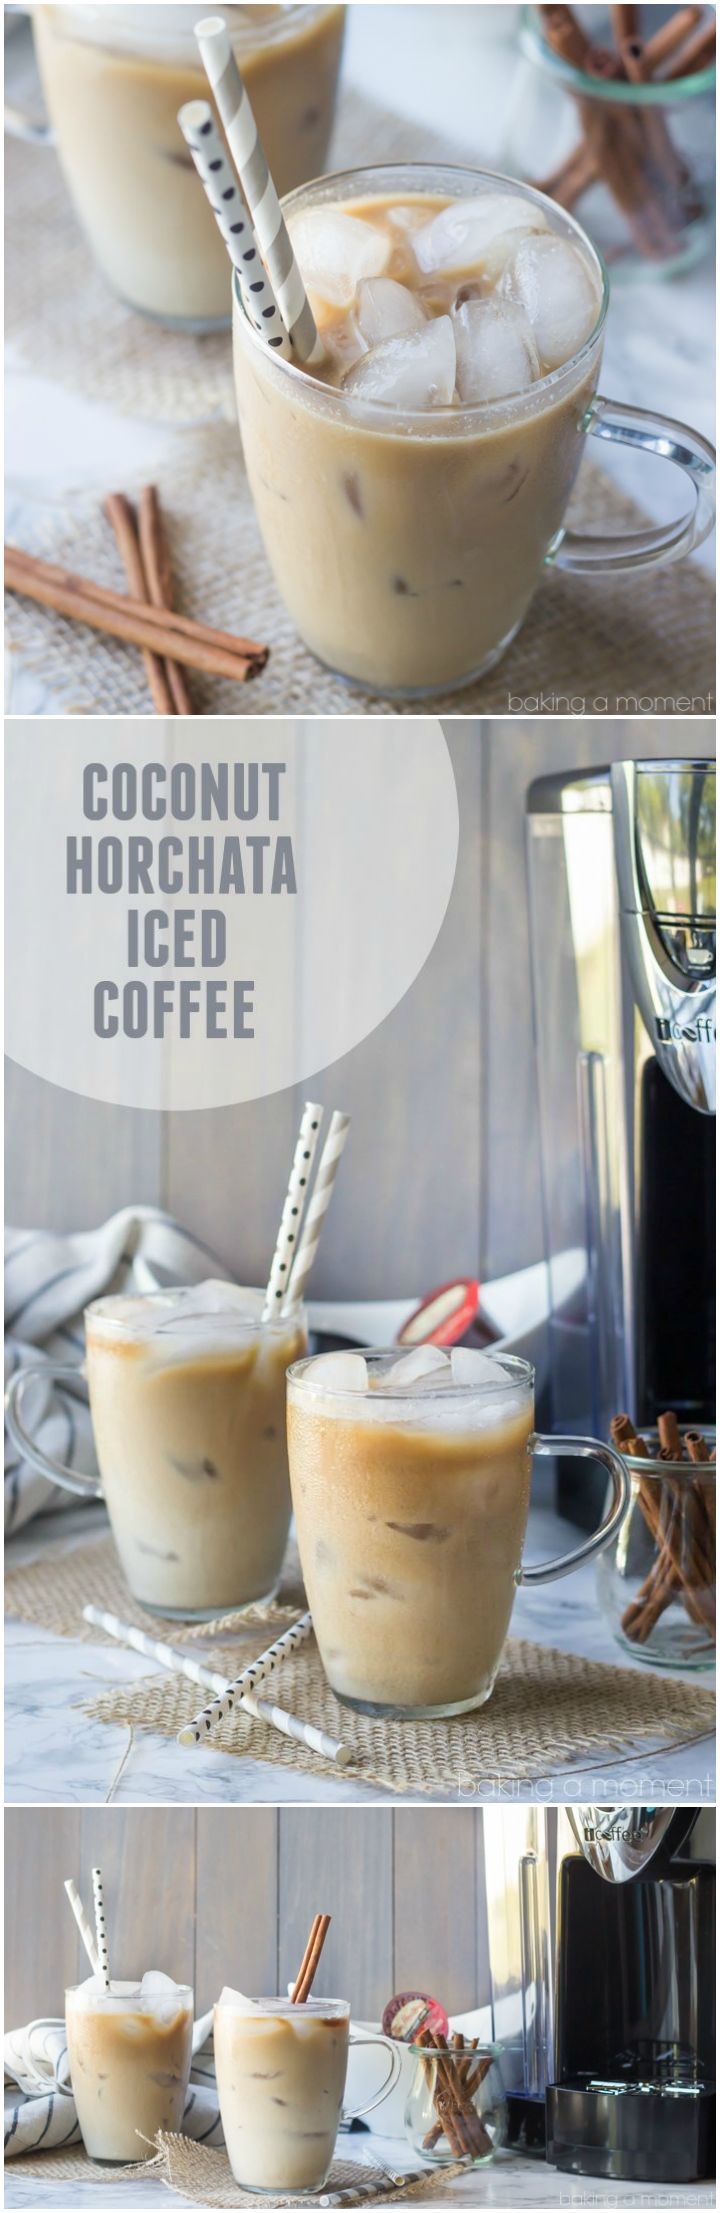 Coconut Horchata Iced Coffee: This iced coffee is so creamy I could hardly believe it was dairy-free. Loved those hints of coconut, almond, and cinnamon too!